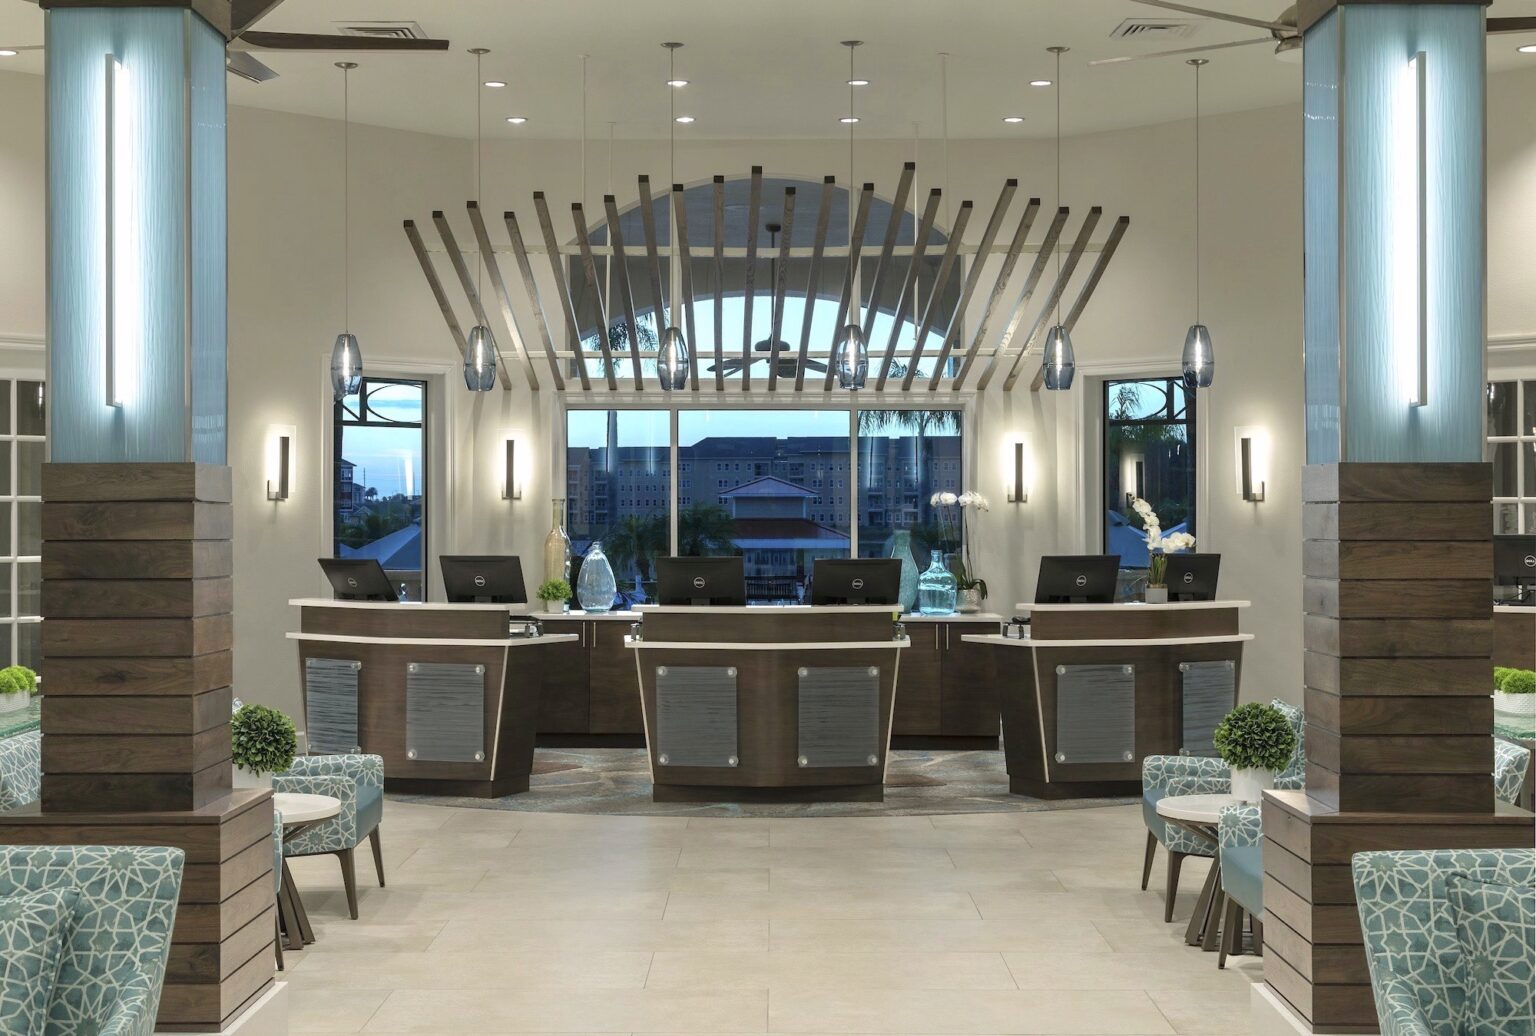 summer bay orlando hotel check in lobby renovations ff&e interior design